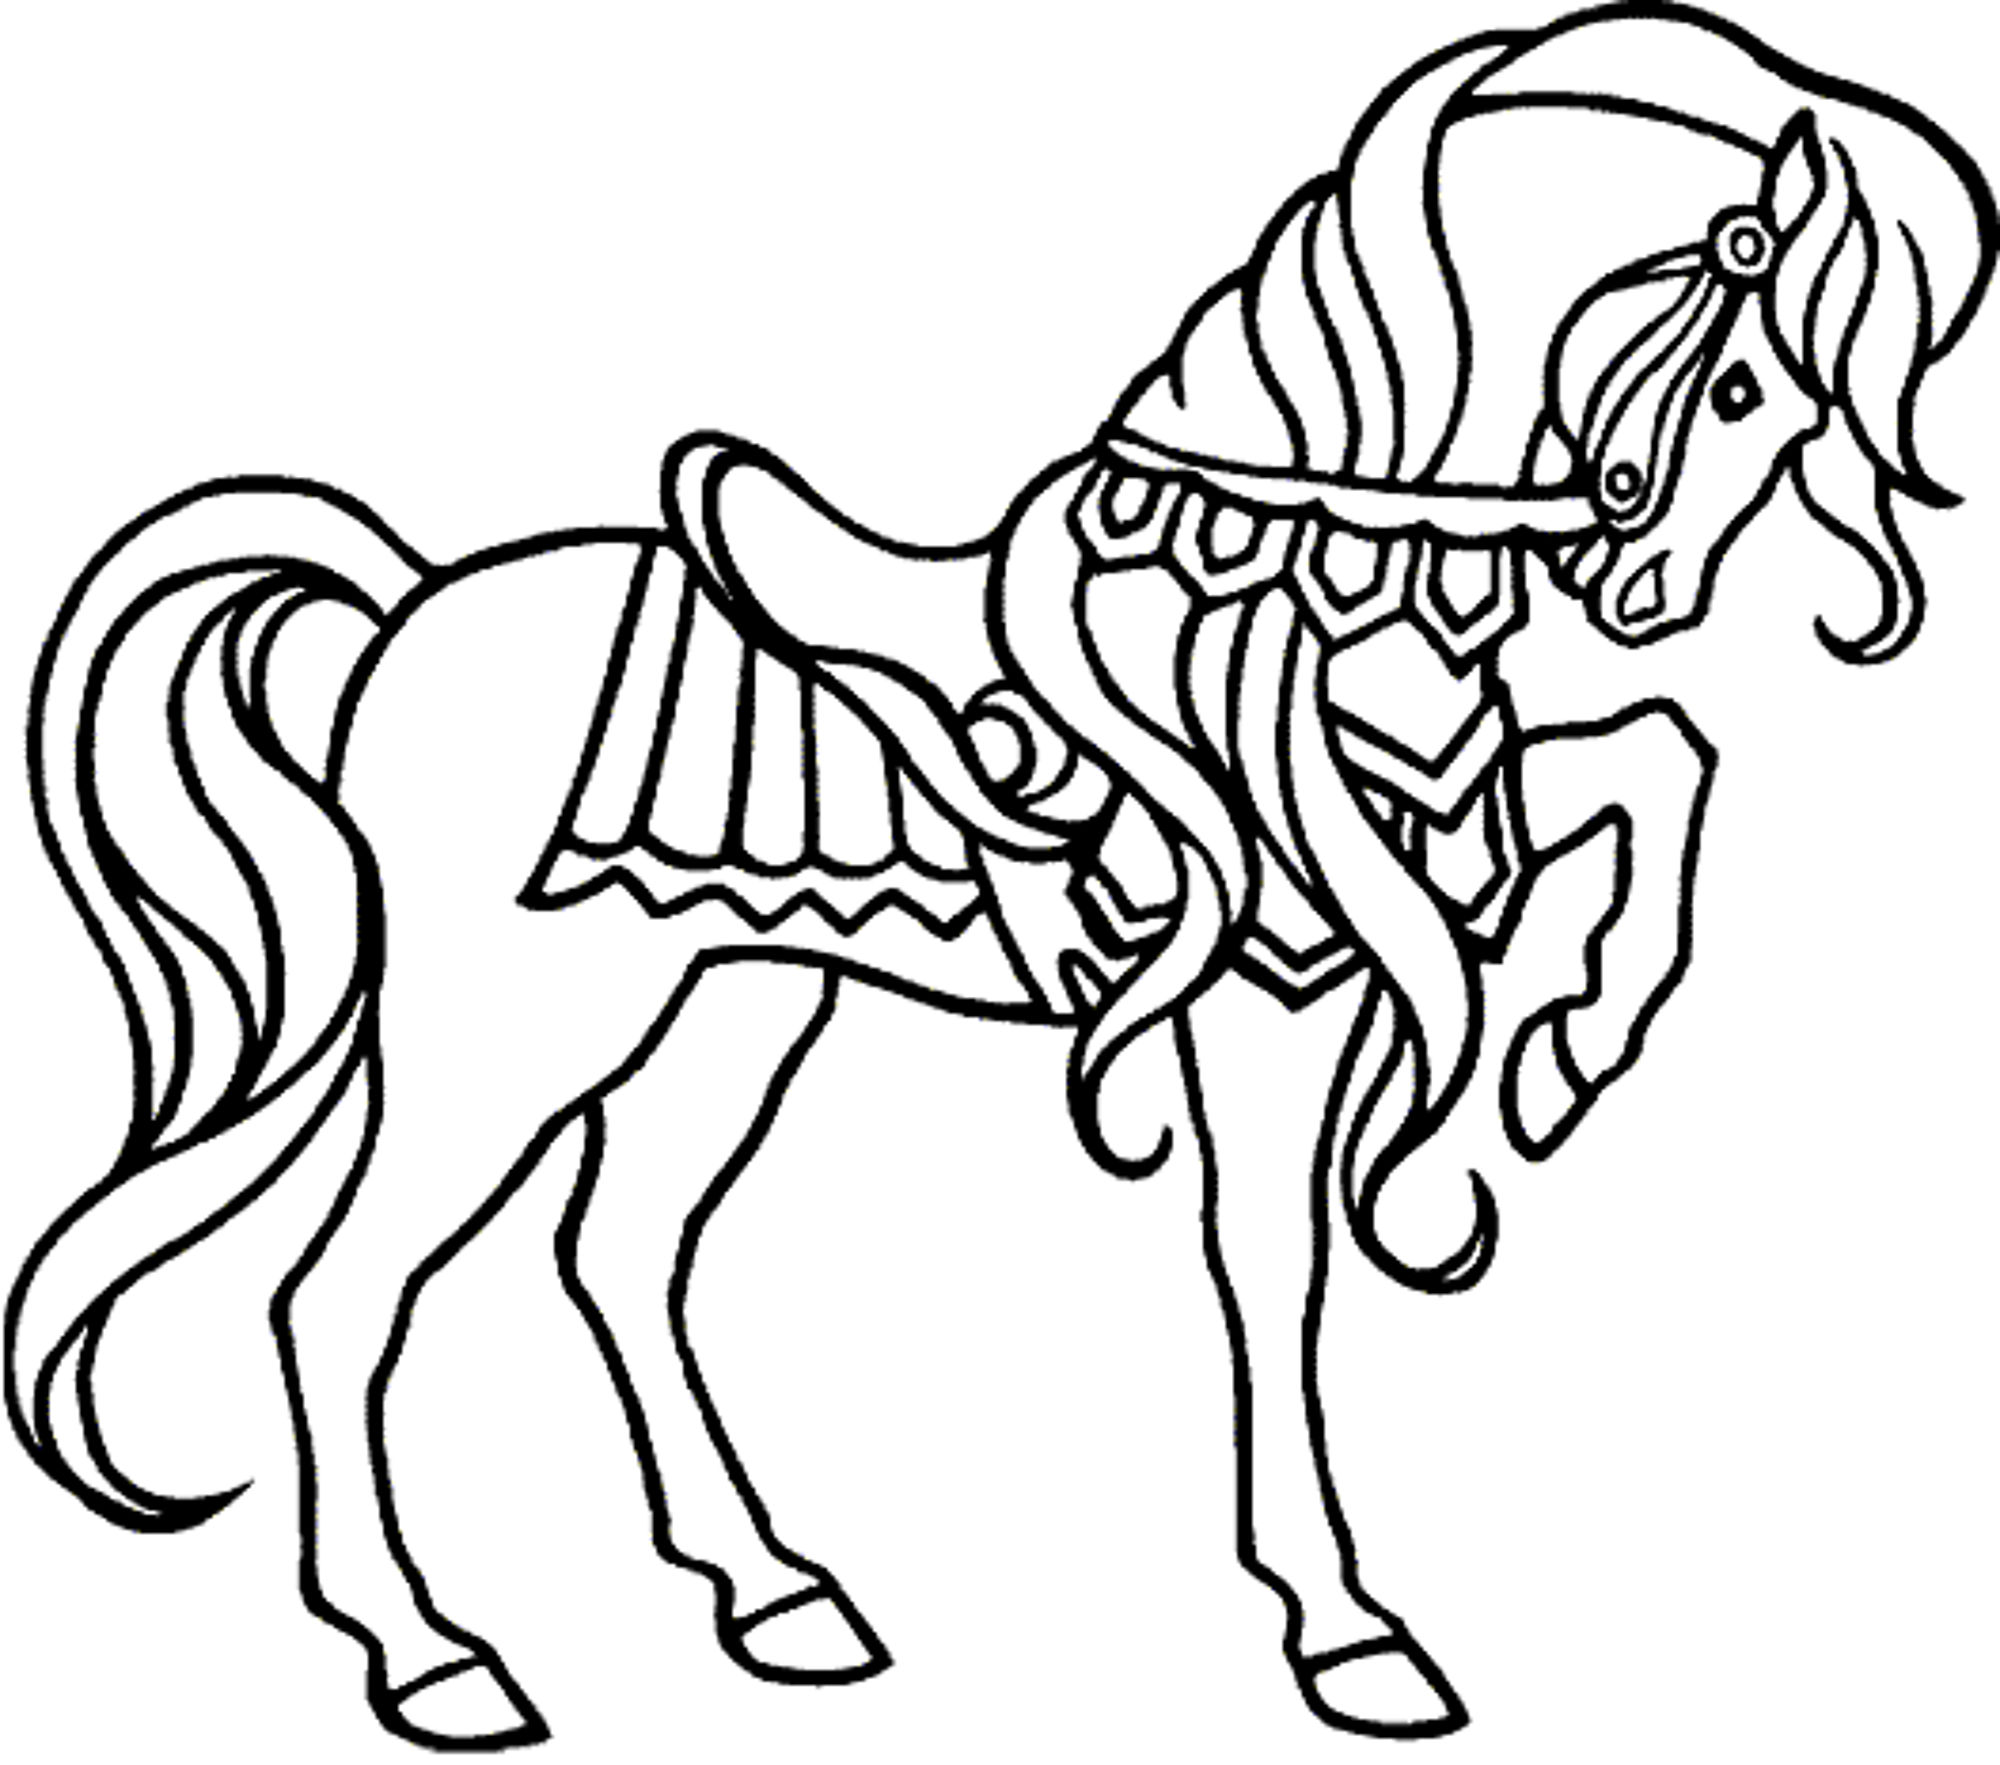 Girl Coloring Pages To Print at GetDrawings.com | Free for ...